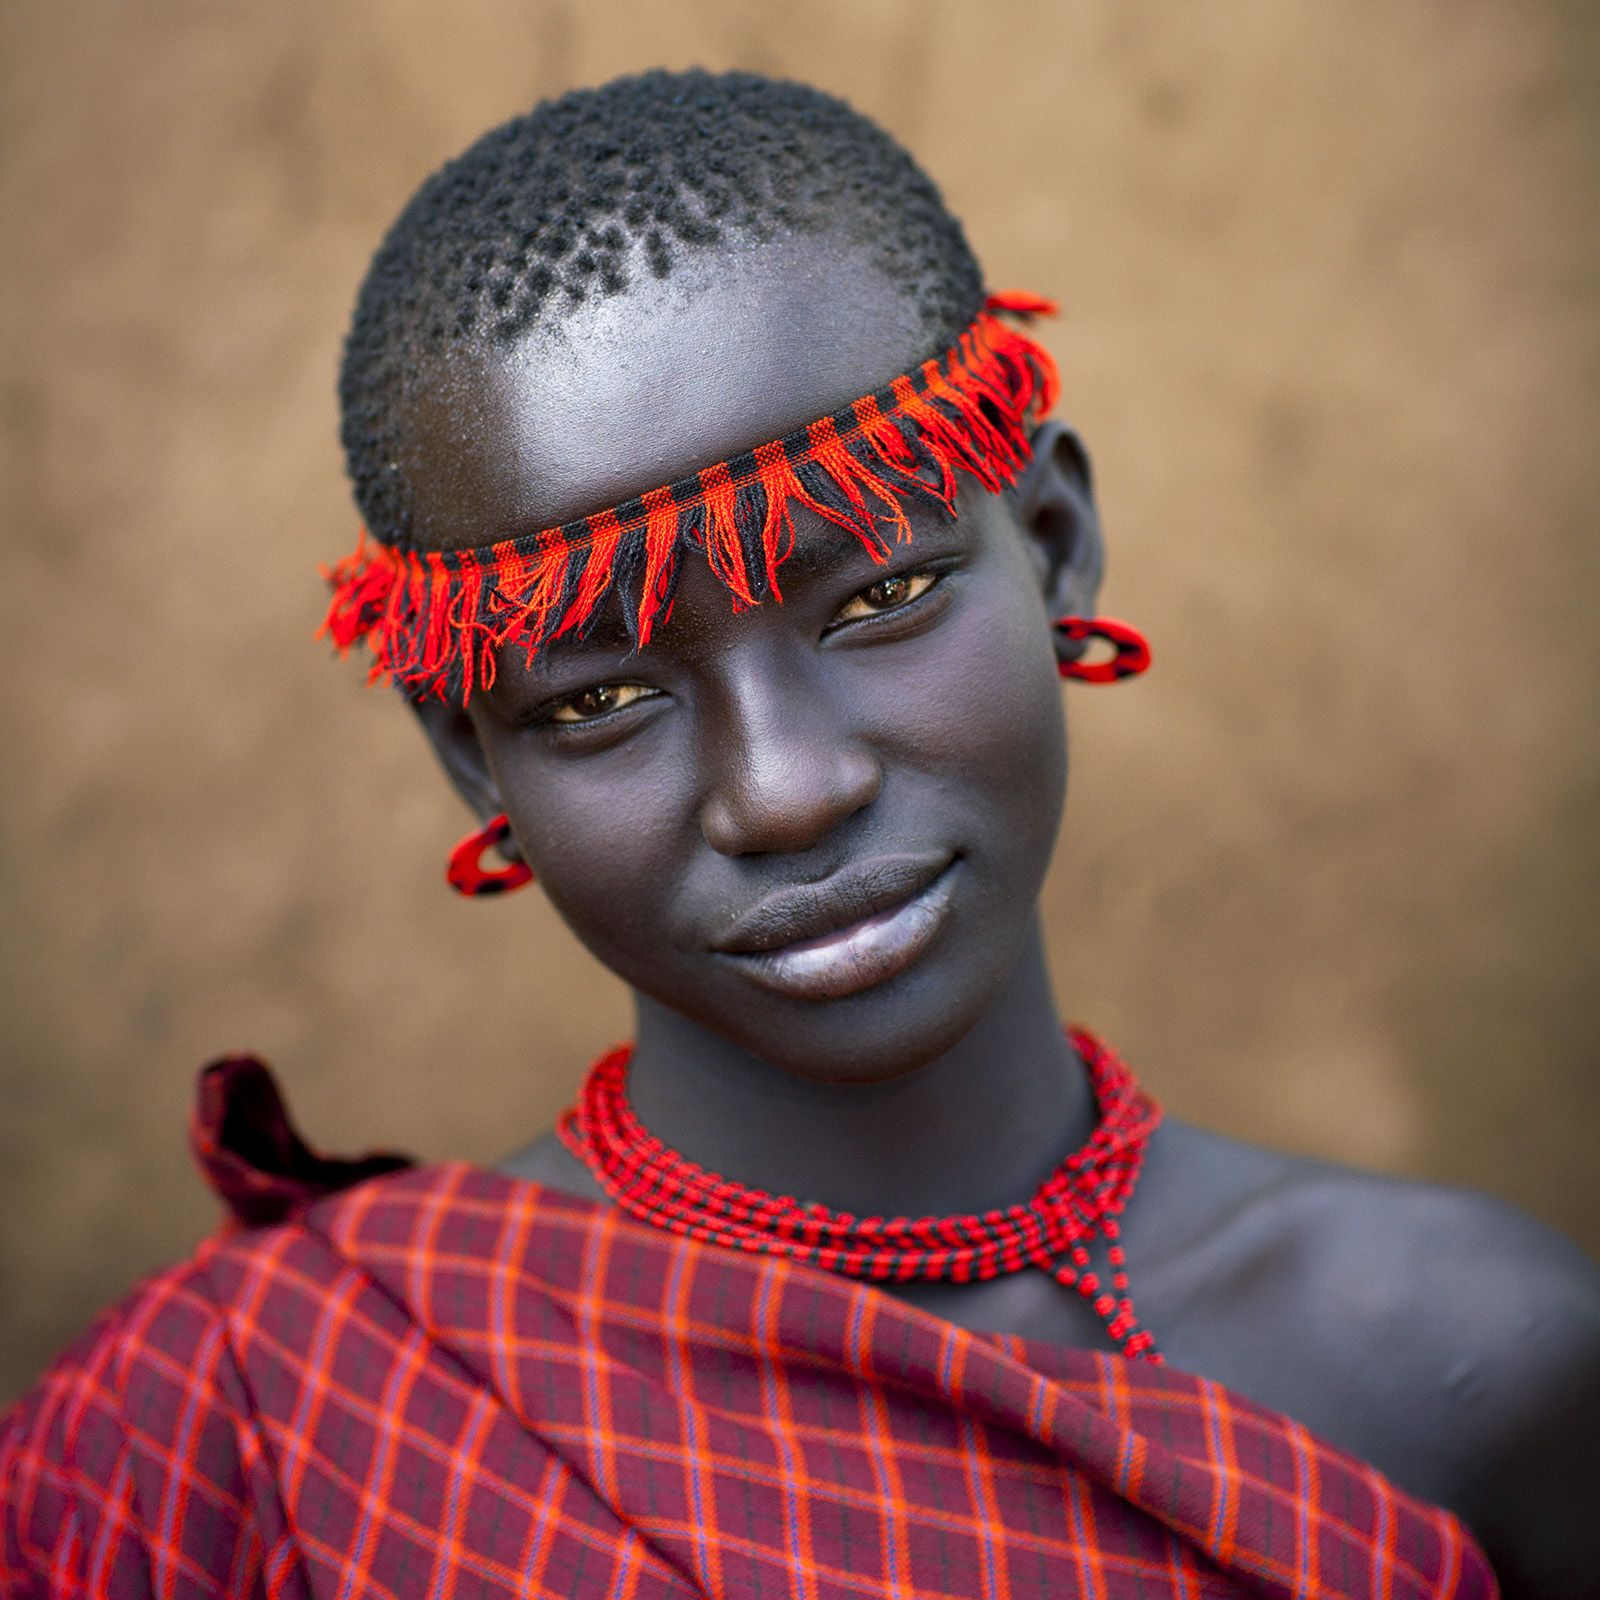 Bodi tribe woman, moo valley, Ethiopia  http://itunes.com/apps/lafforgueHD